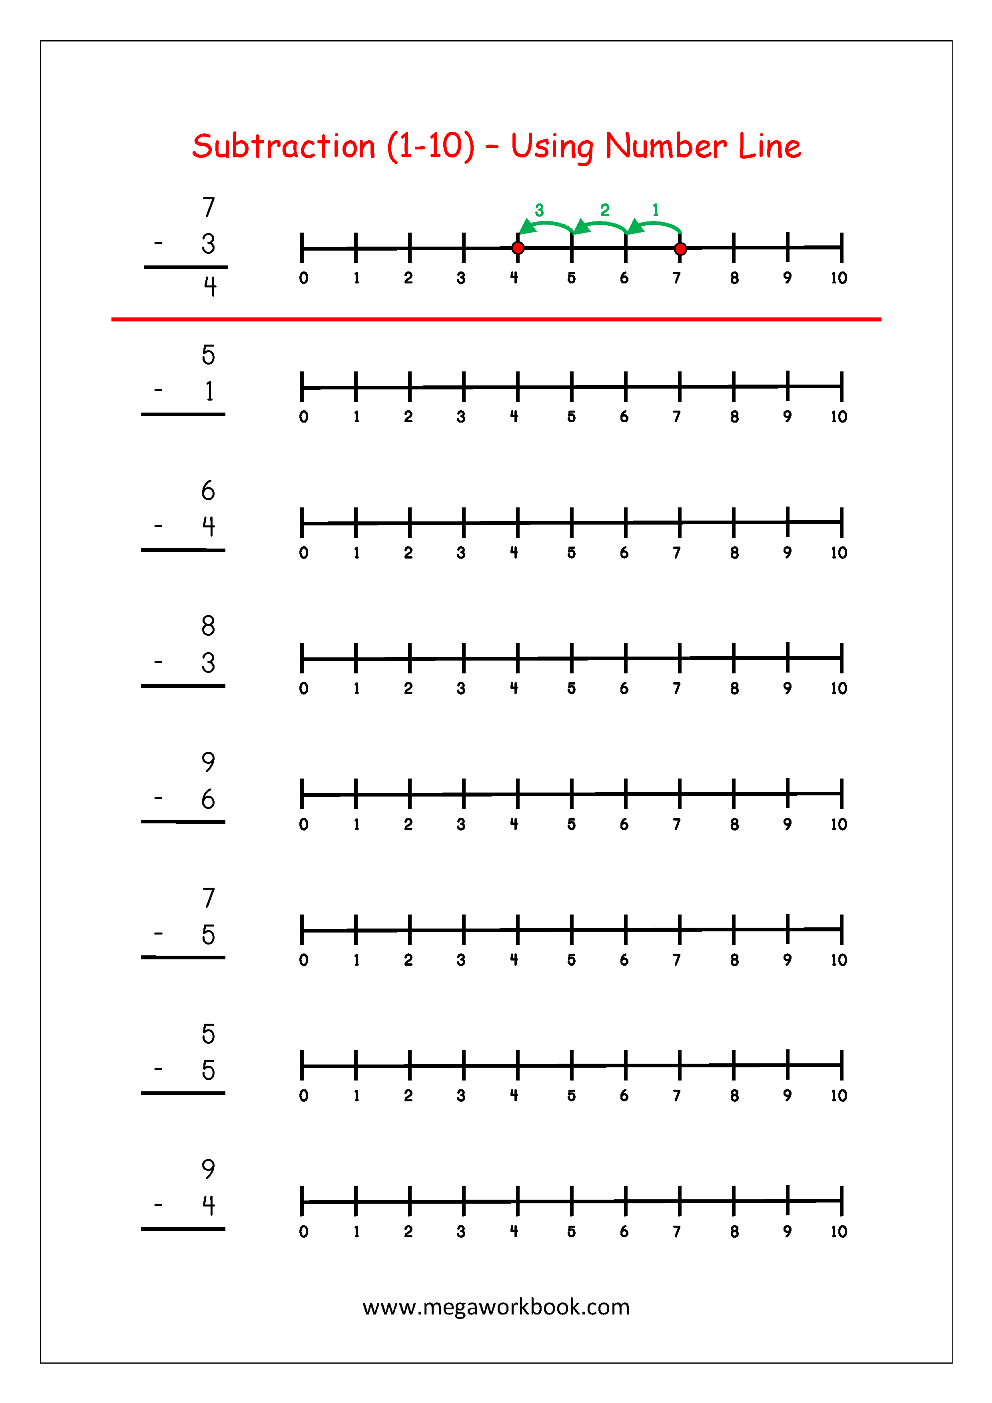 Subtraction Worksheets Using A Number Line worded algebra problems – Ks1 Subtraction Worksheets